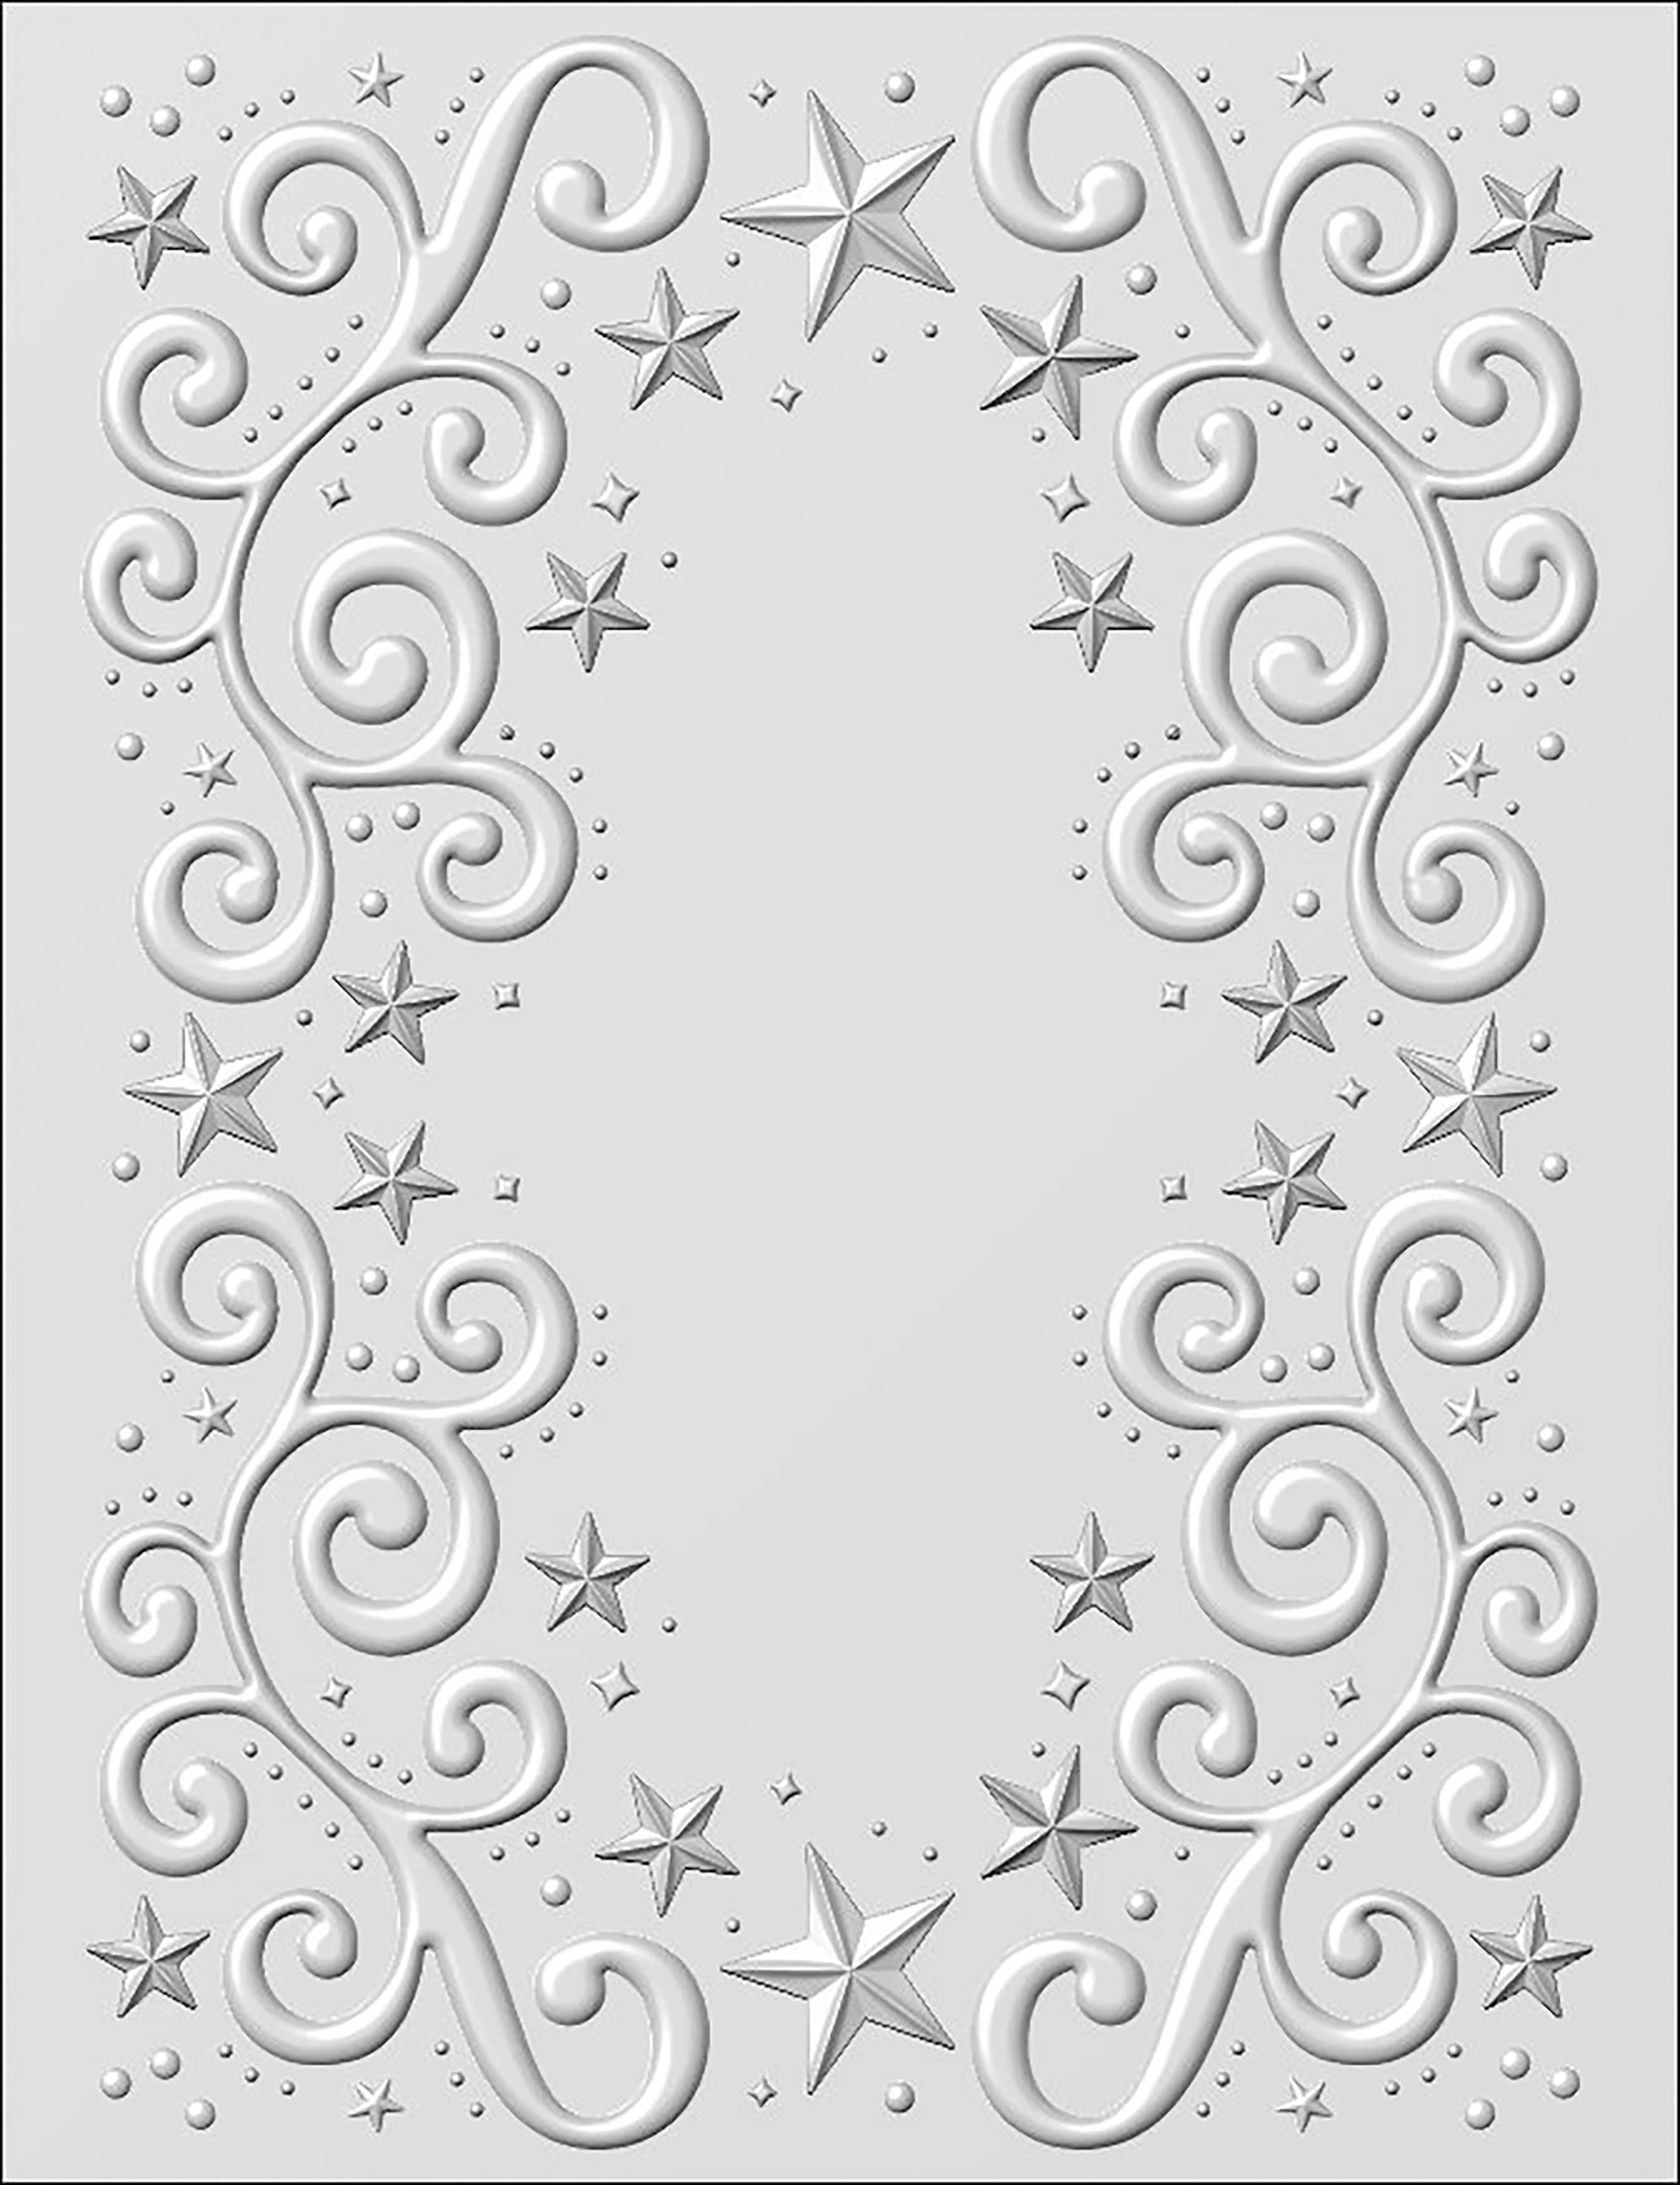 3D Embossing Folder - Twinkle Swirls (Creative Expressions)